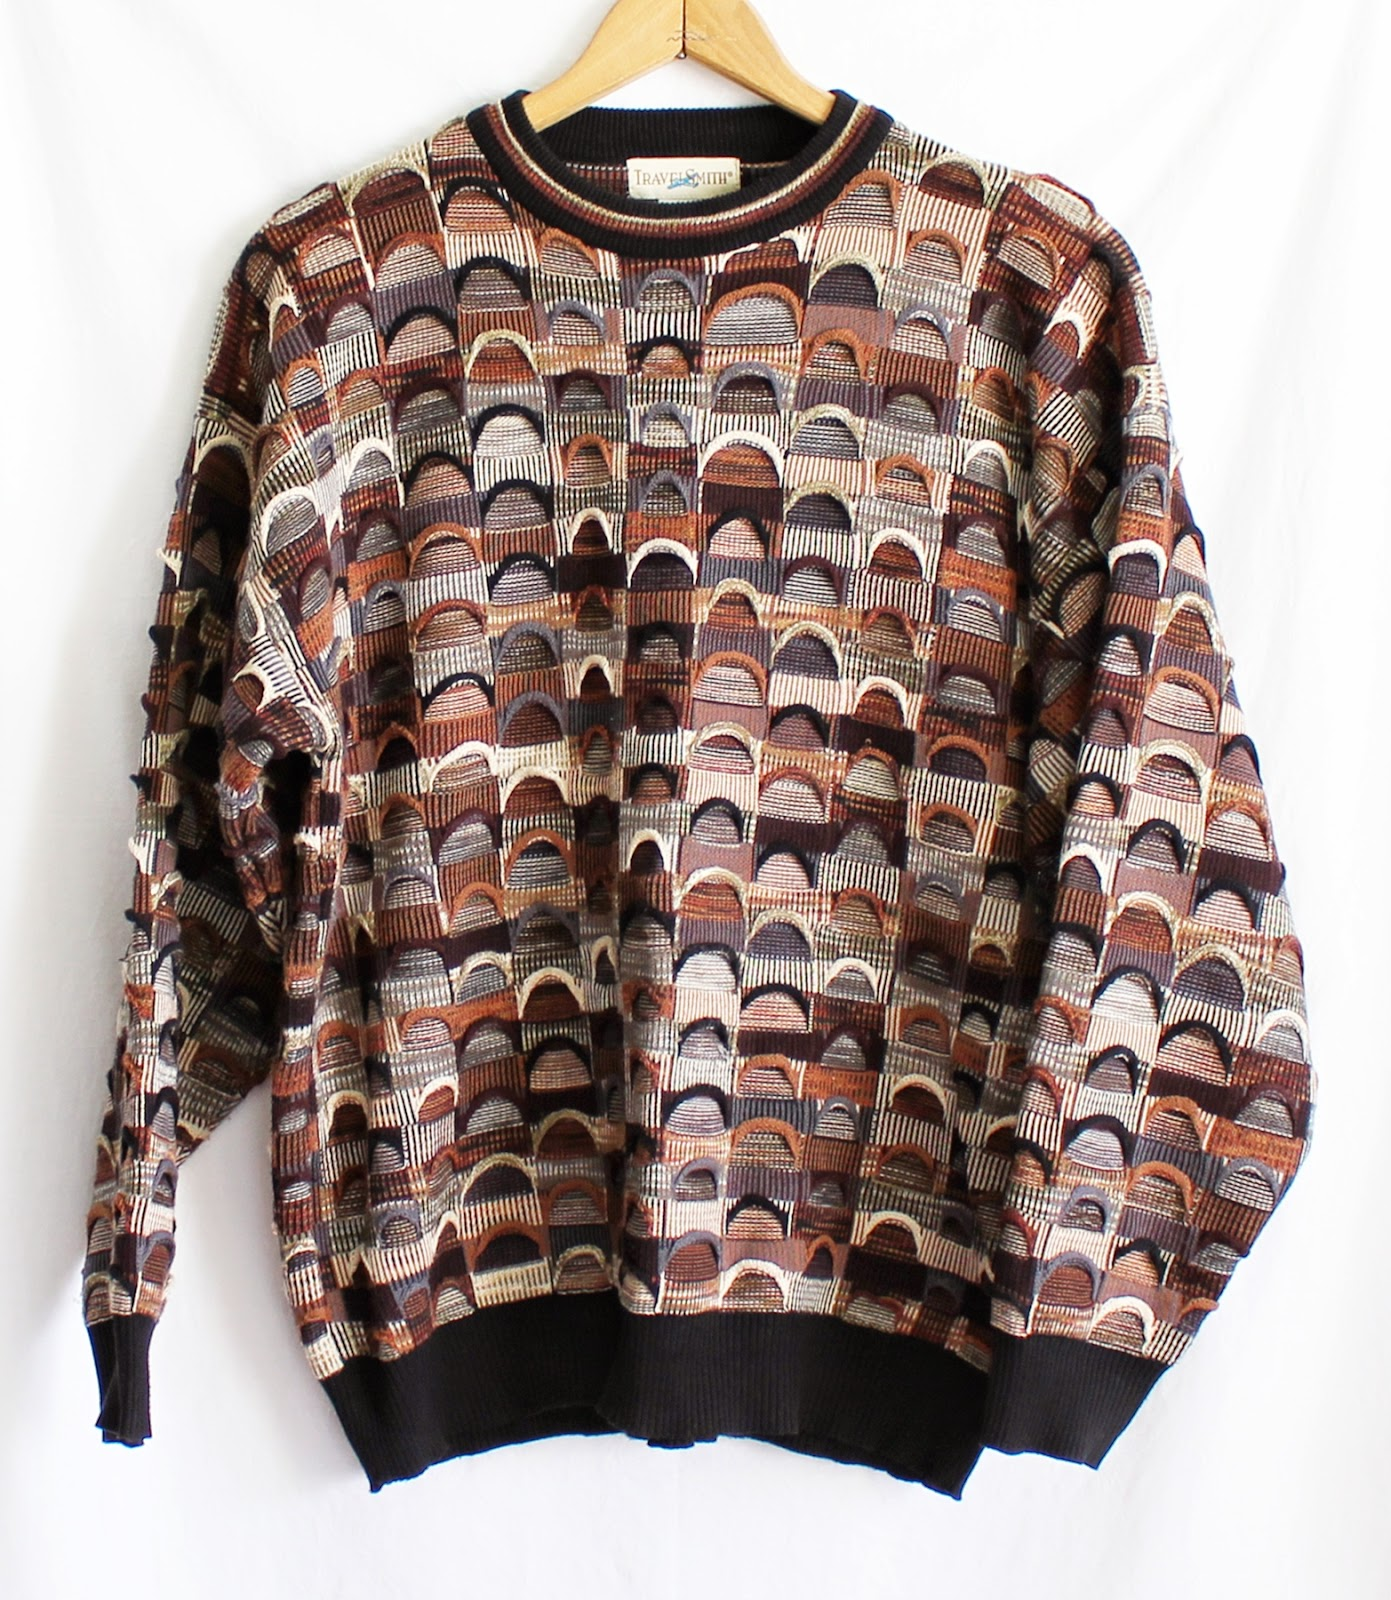 Third Hand Shoppe Bolo Bill Cosby Sweaters